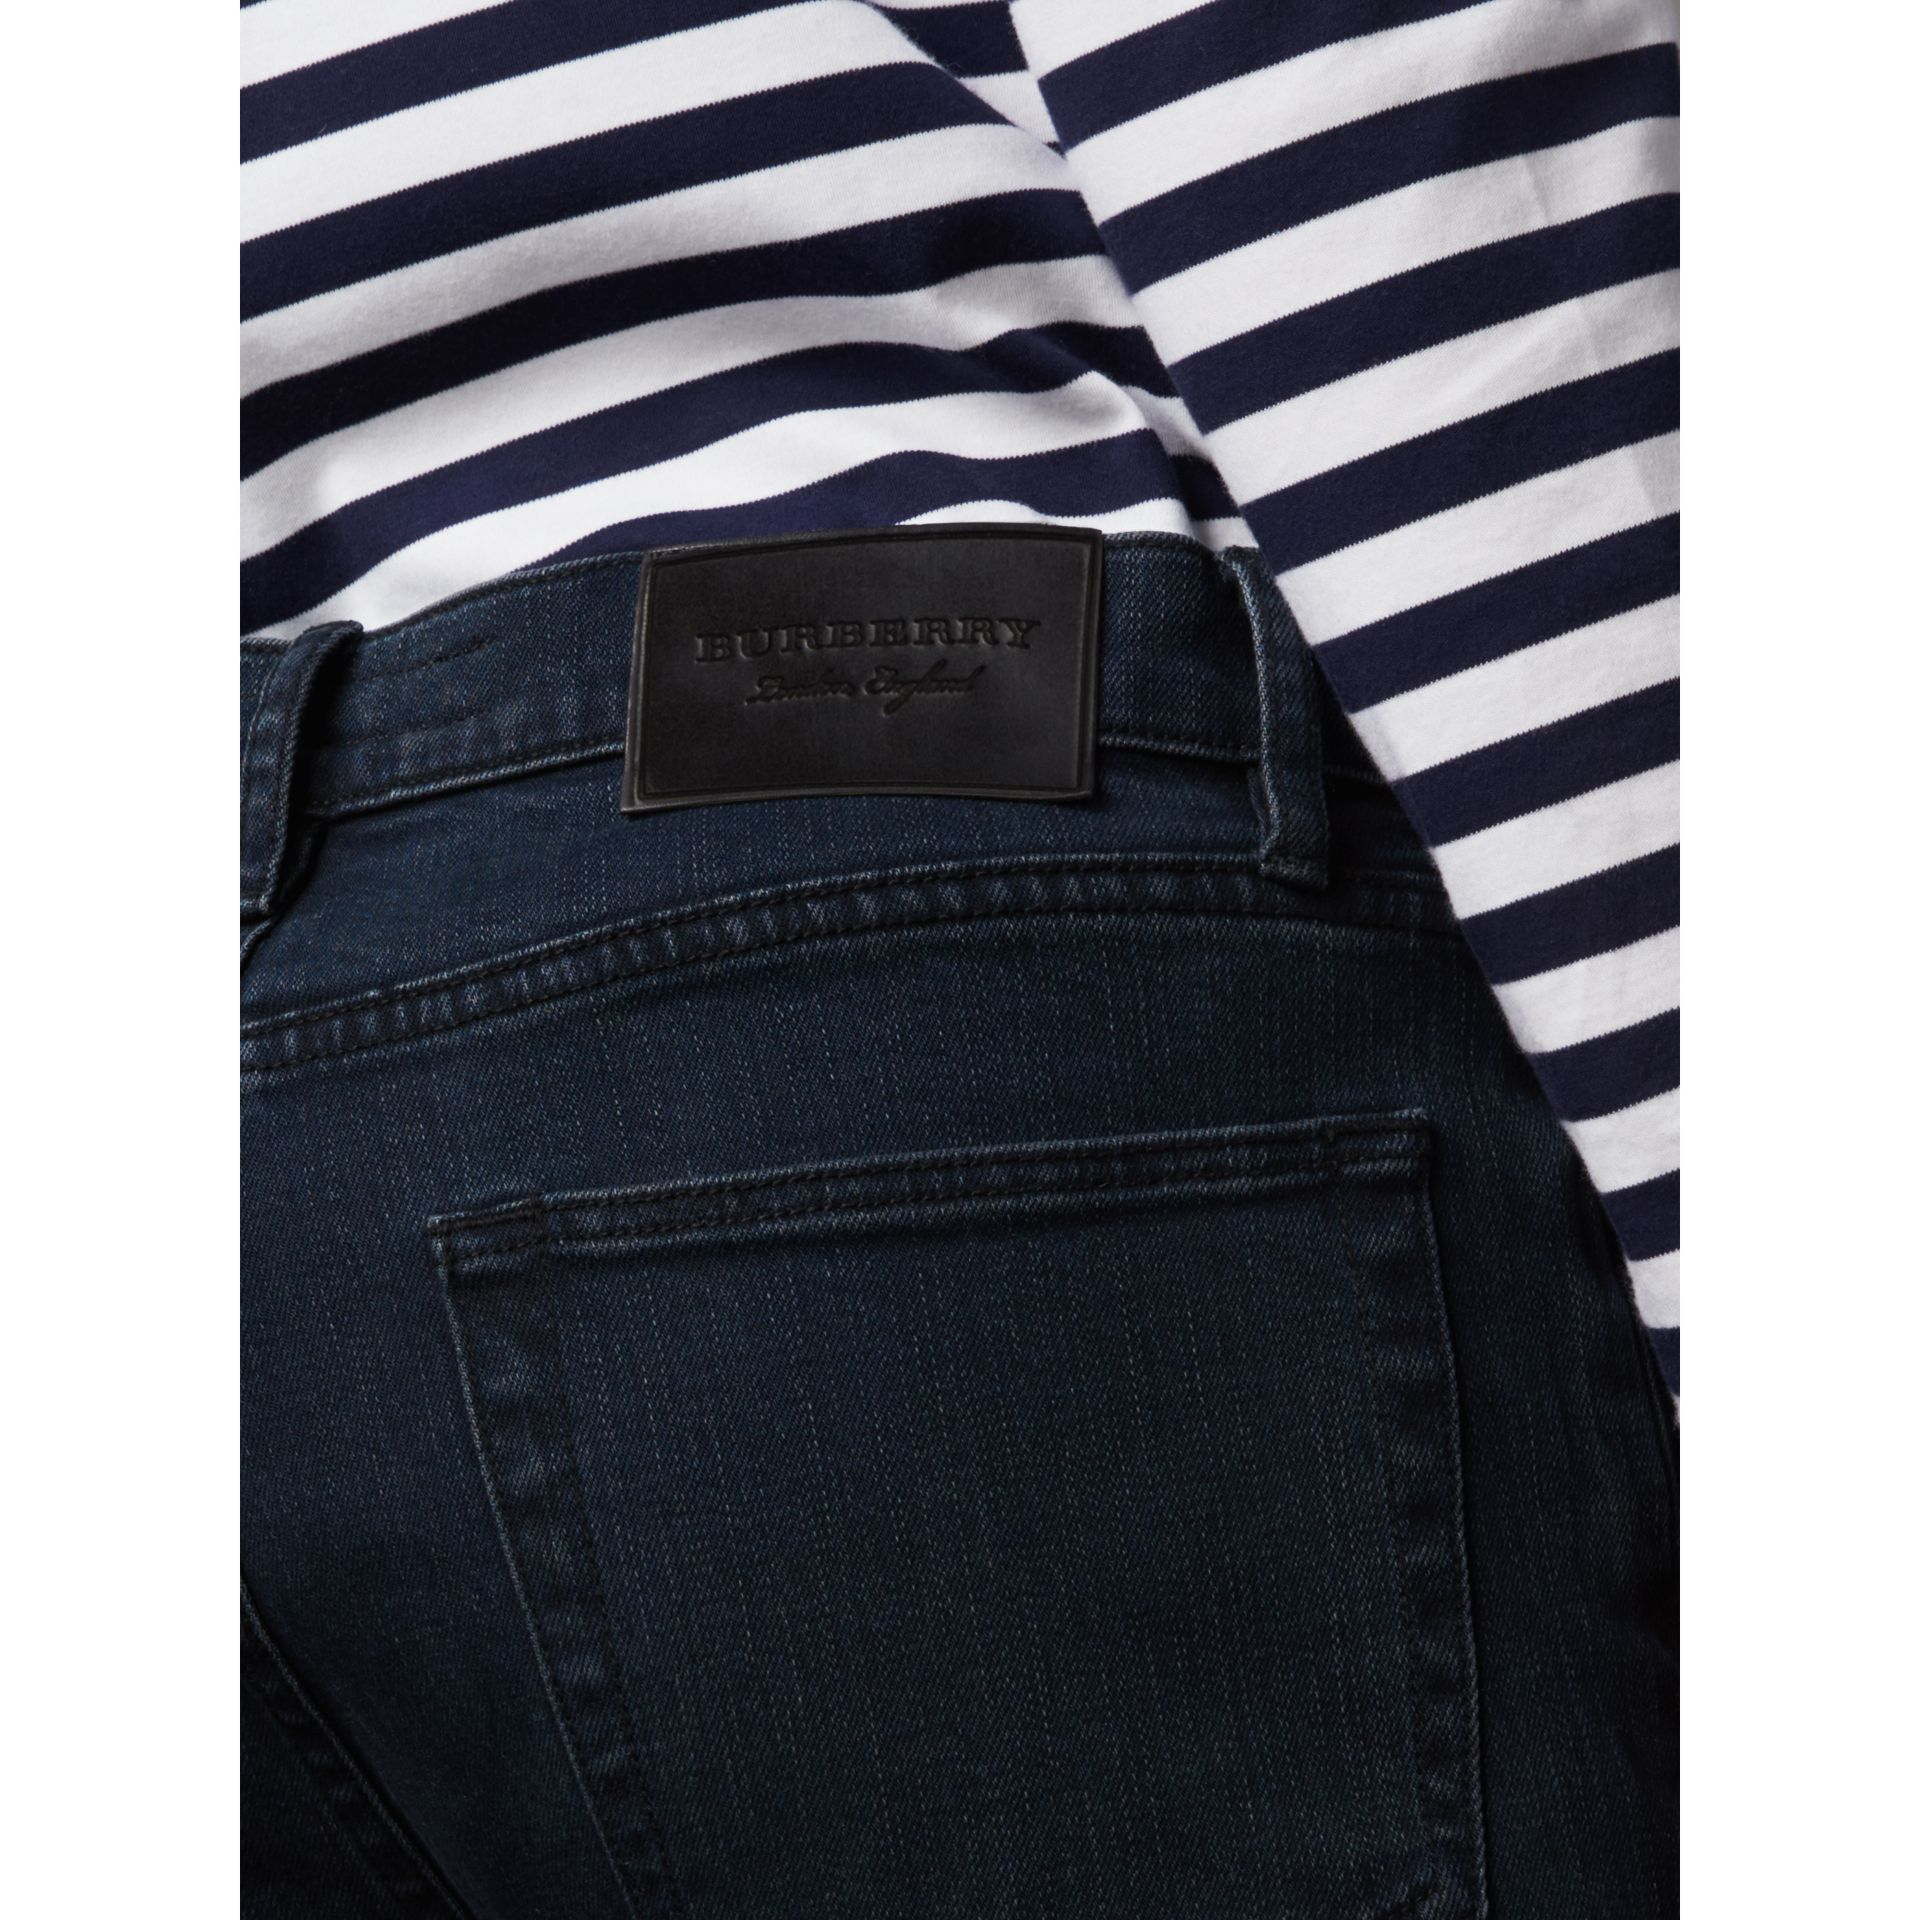 Slim Fit Stretch Denim Jeans in Dark Indigo - Men | Burberry Canada - gallery image 1